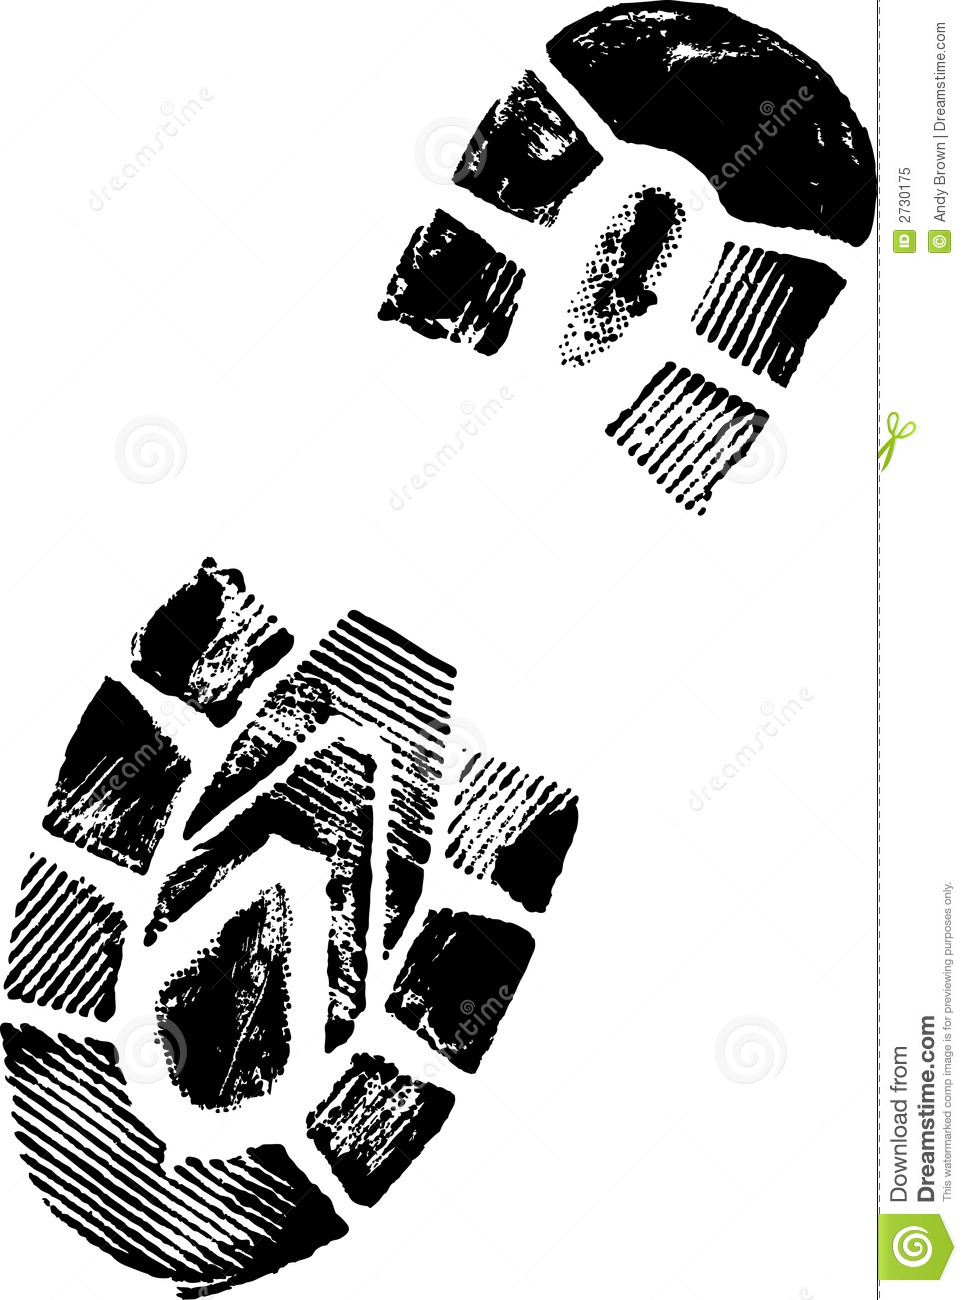 Running Shoe Print Clip Art Free - eClip Art